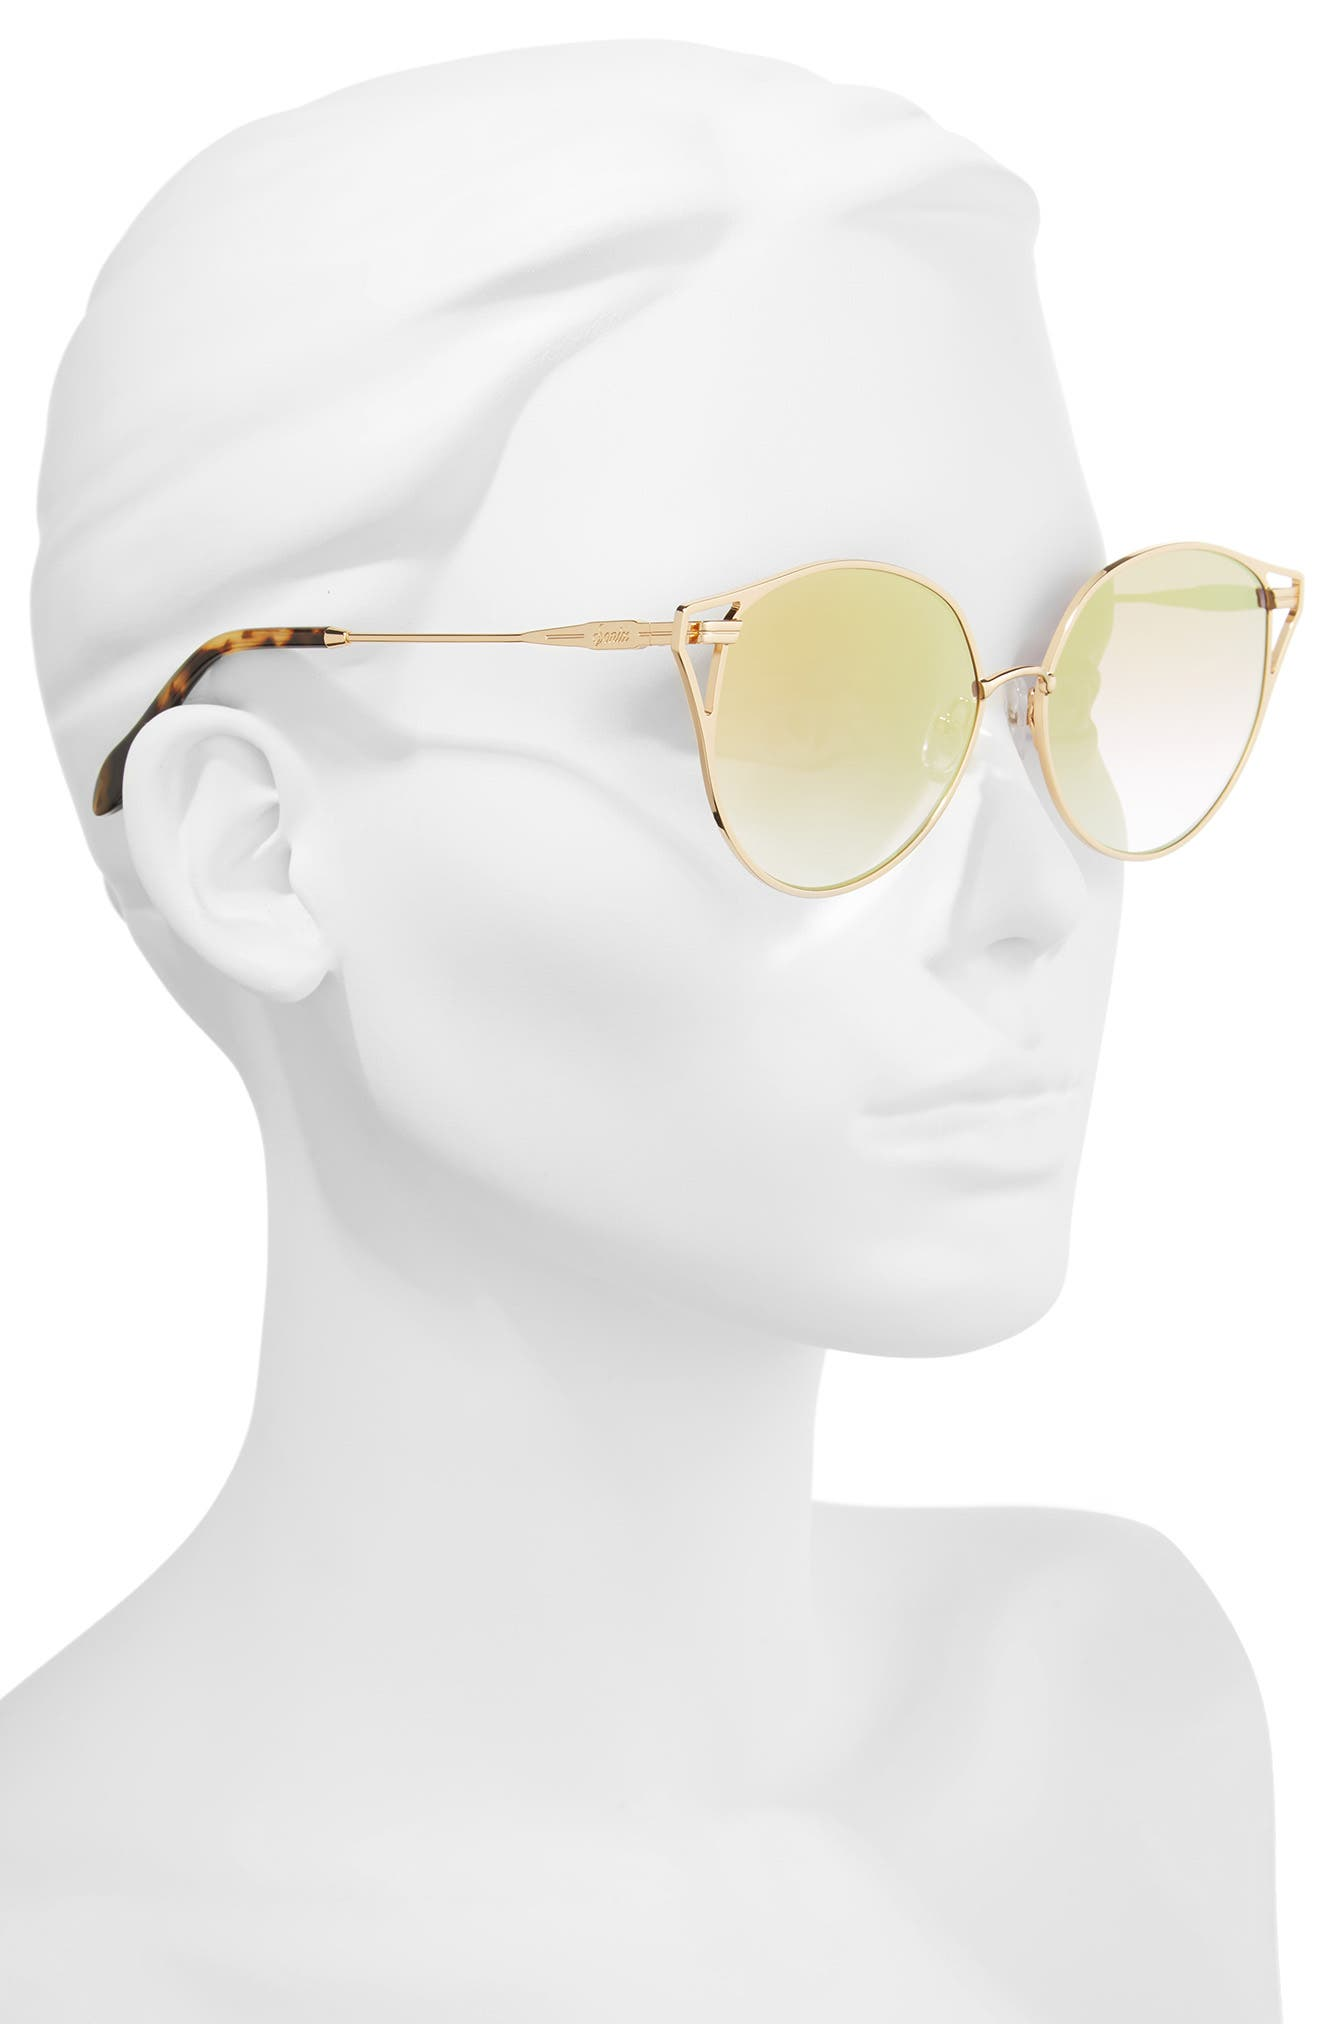 Ibiza 55mm Cat Eye Sunglasses,                             Alternate thumbnail 2, color,                             Gold Wire/ Amber Mirror